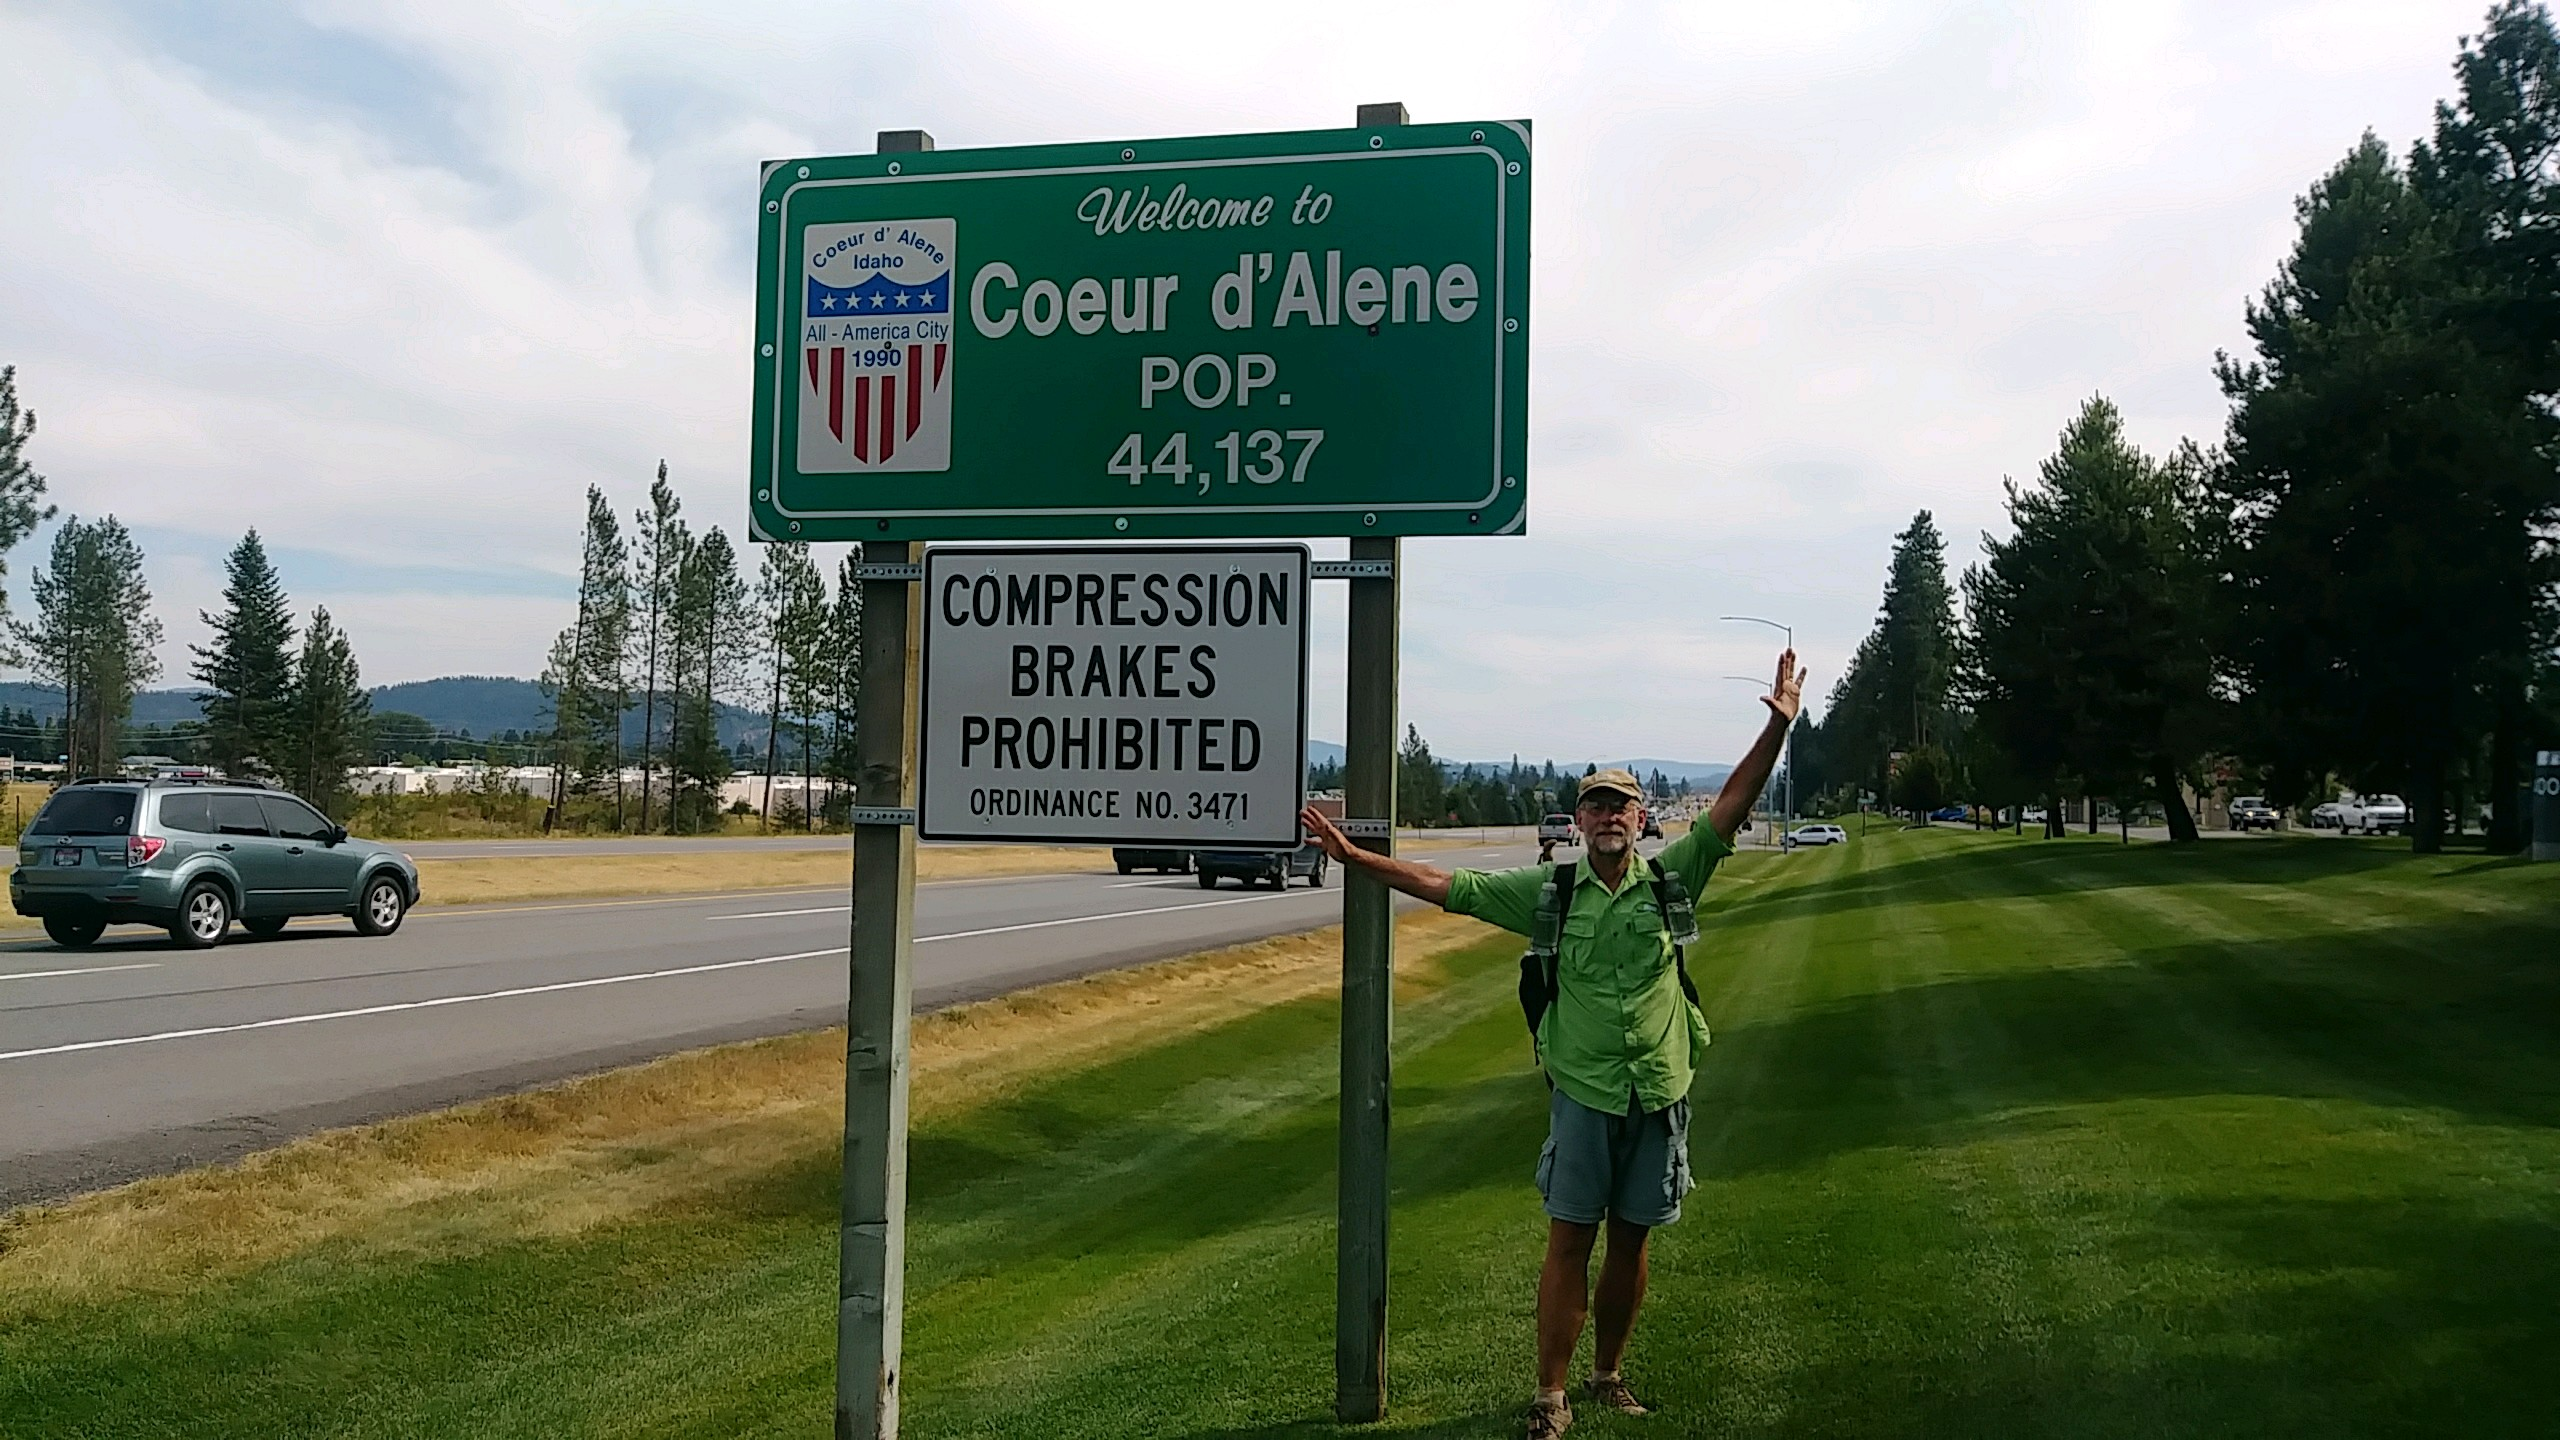 Hitchhiking to Coeur d Alene